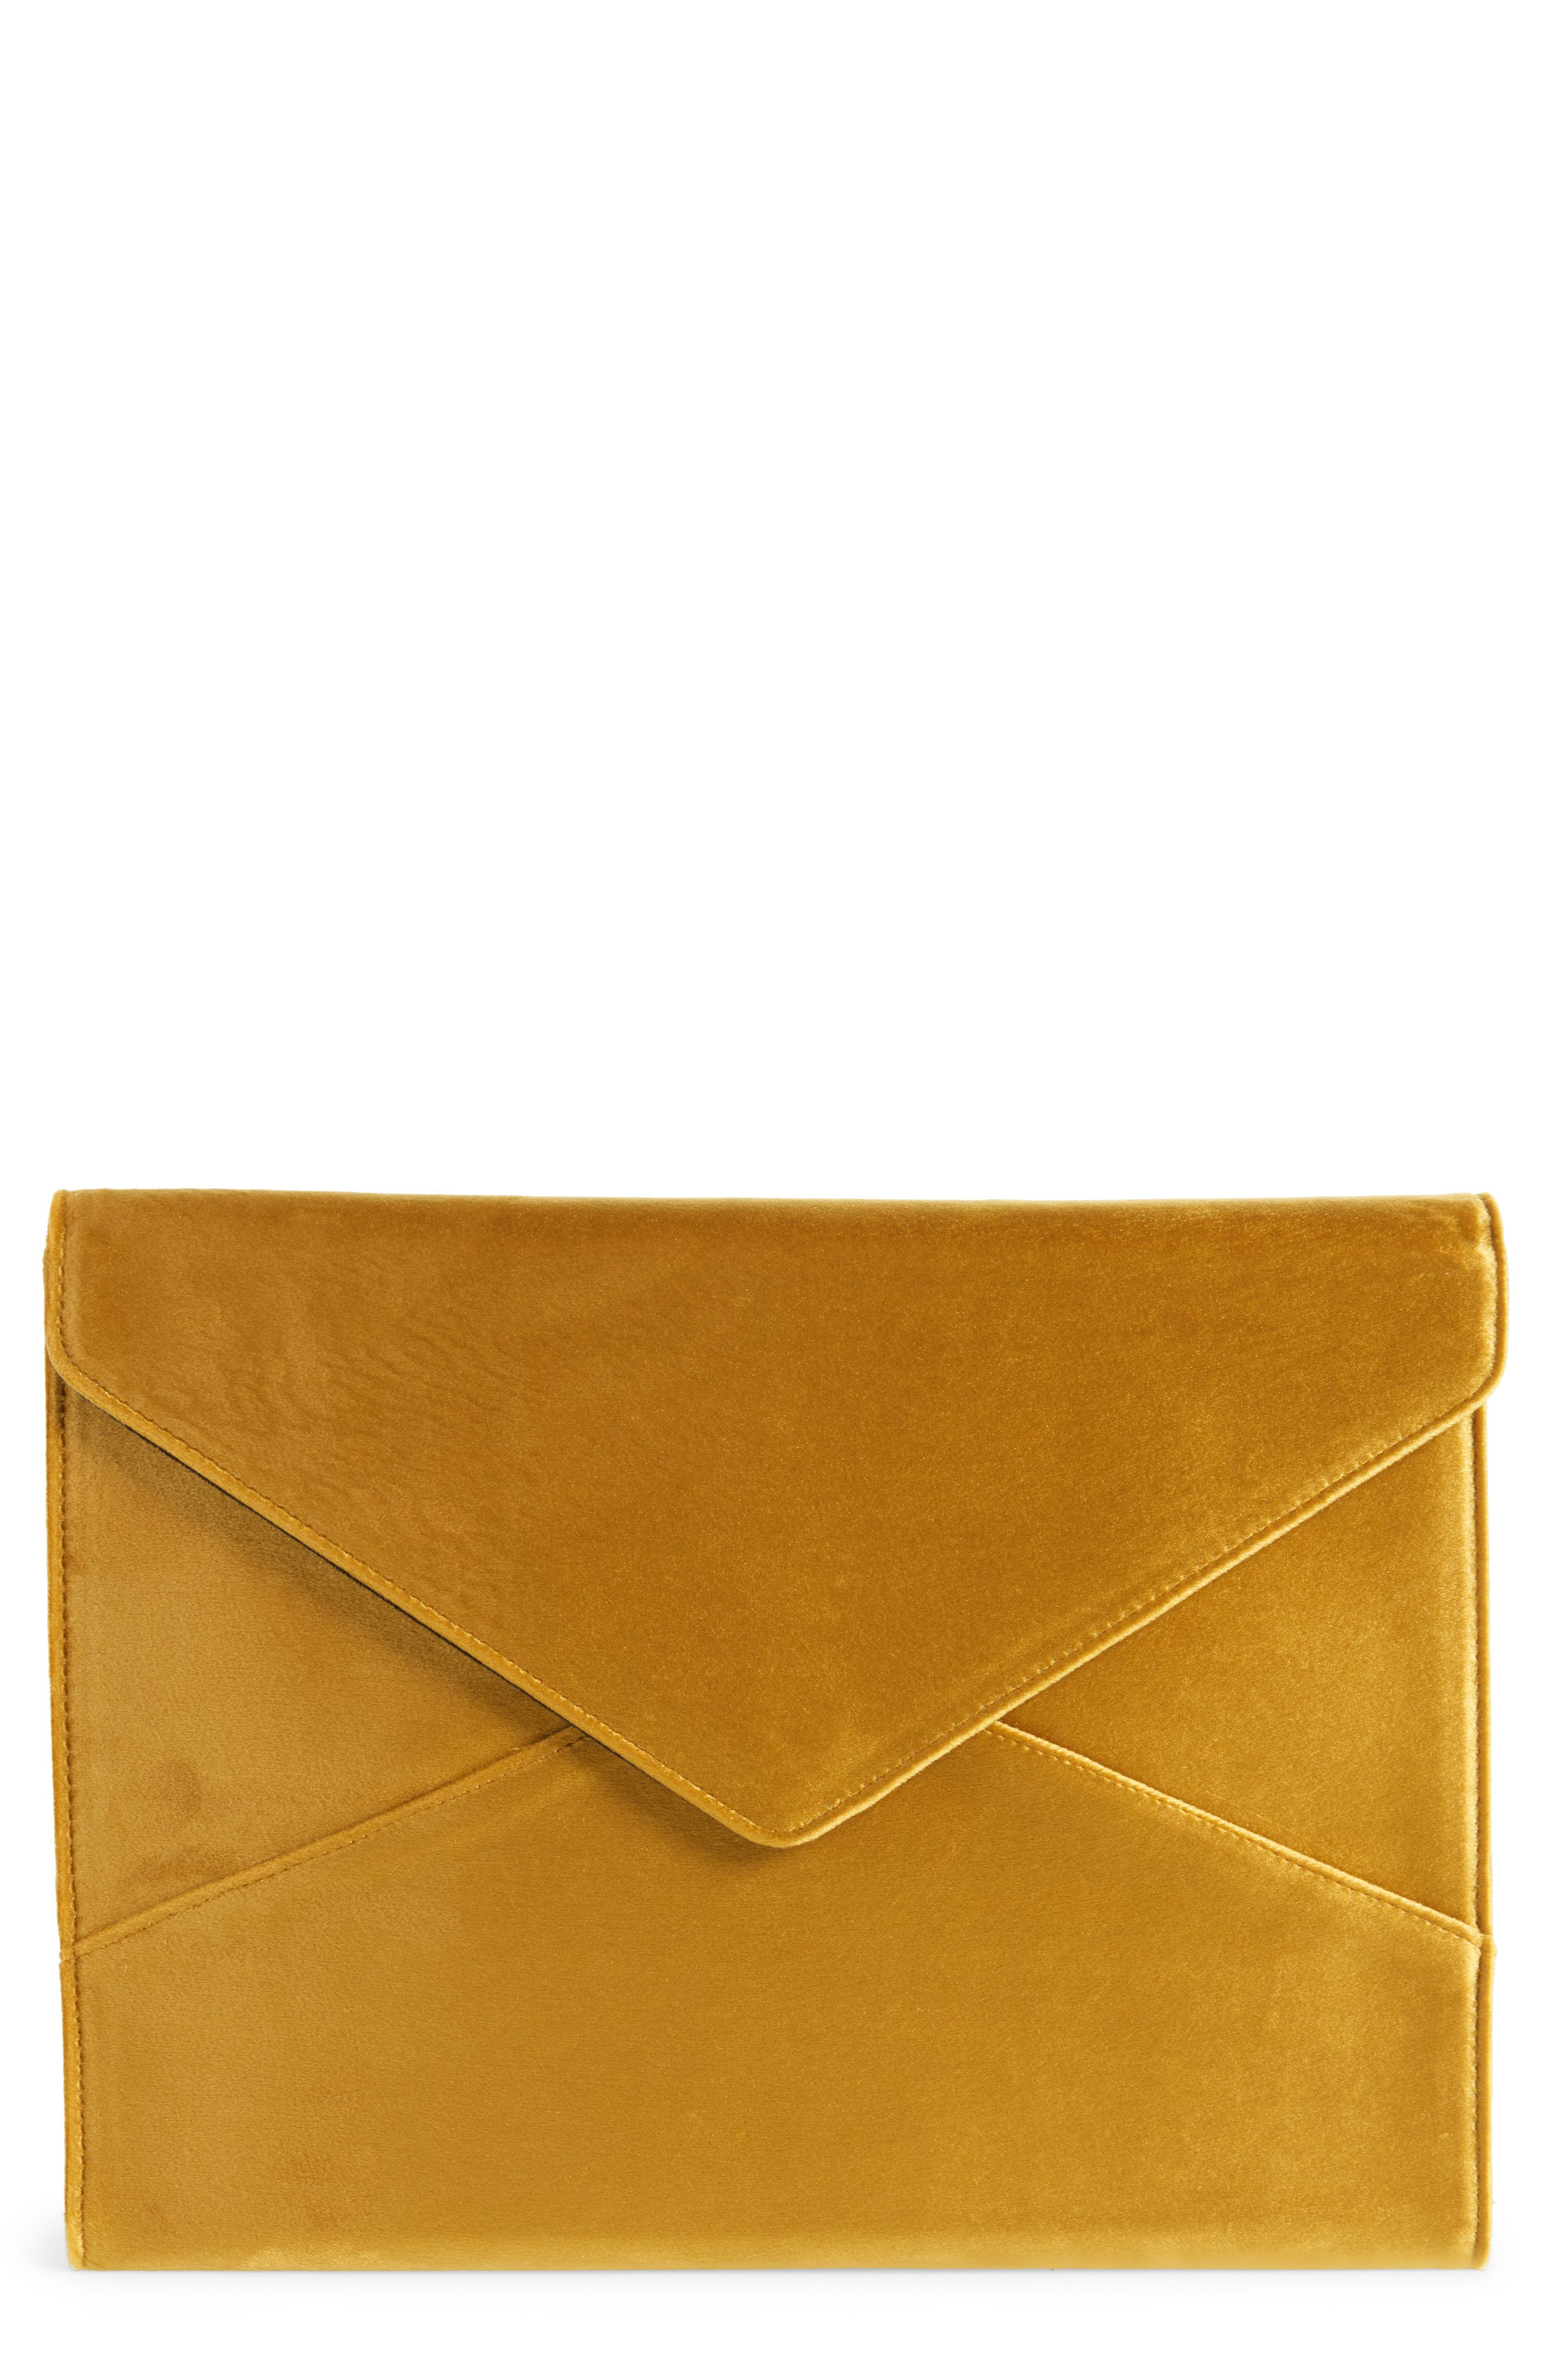 Main Image - Sonix Canary Velvet Laptop Clutch